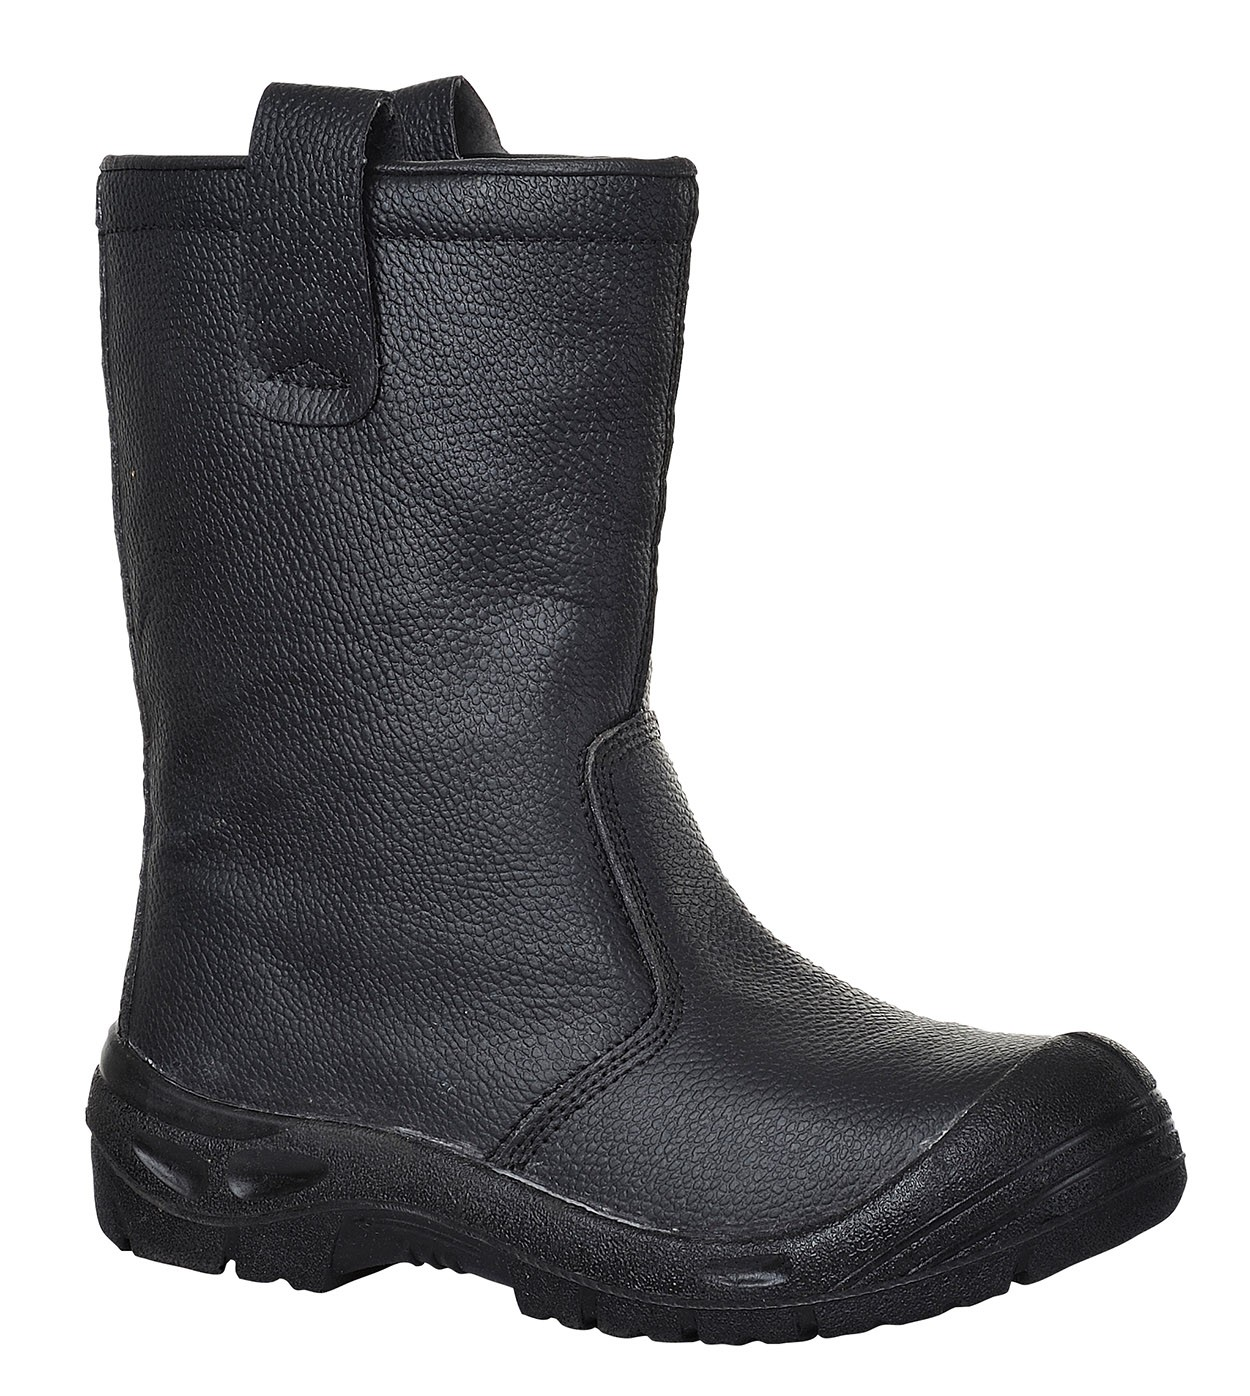 FW29/B STEELITE RIGGER BOOT BLACK